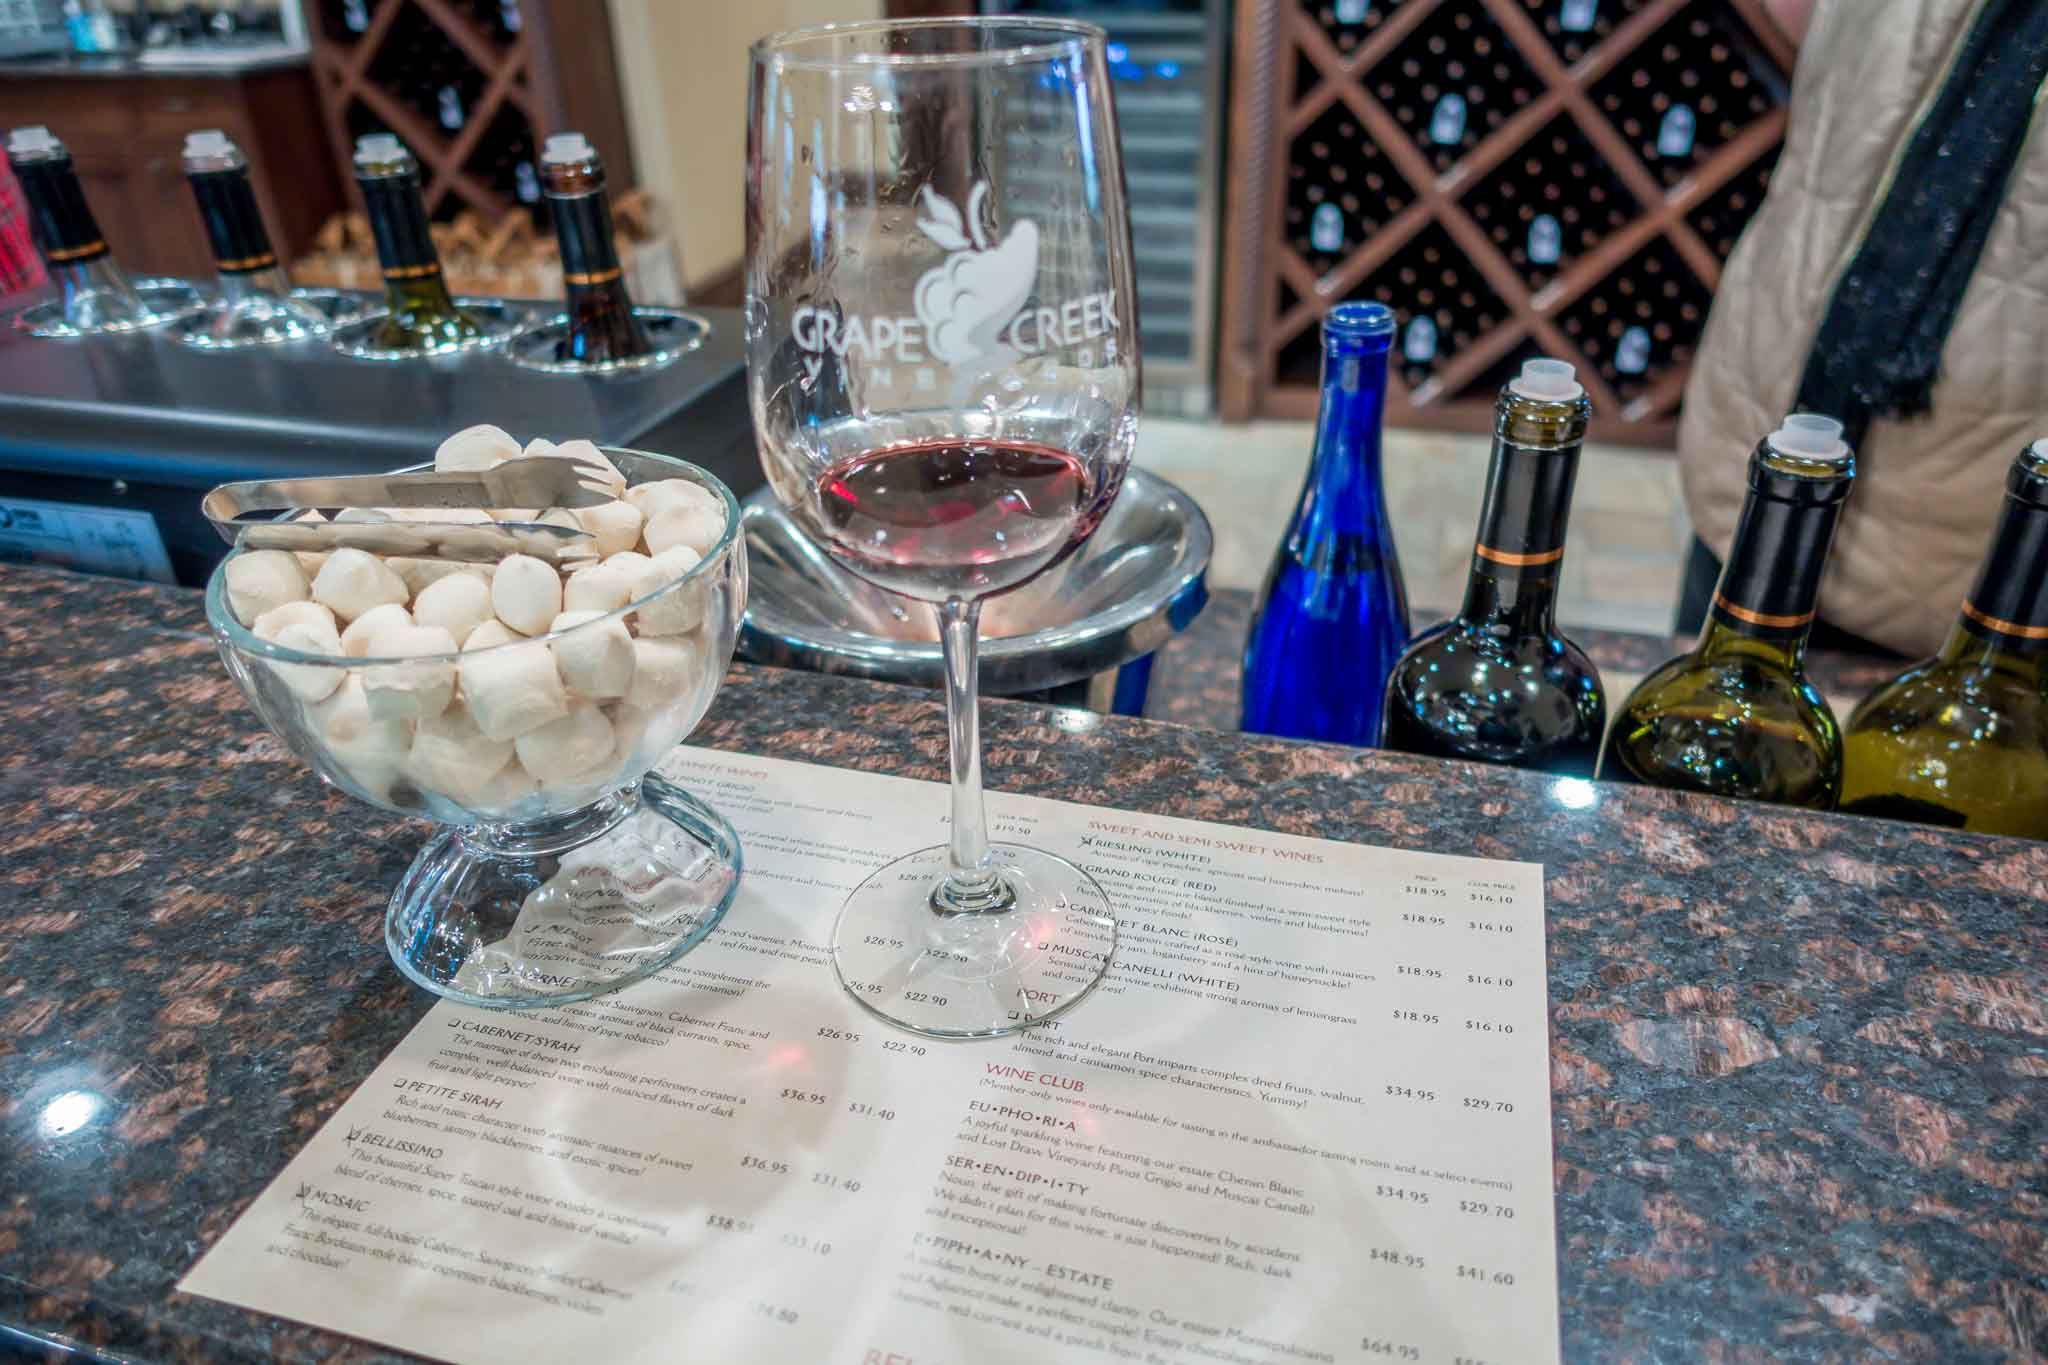 Wine glass and tasting menu at Grape Creek Vineyards